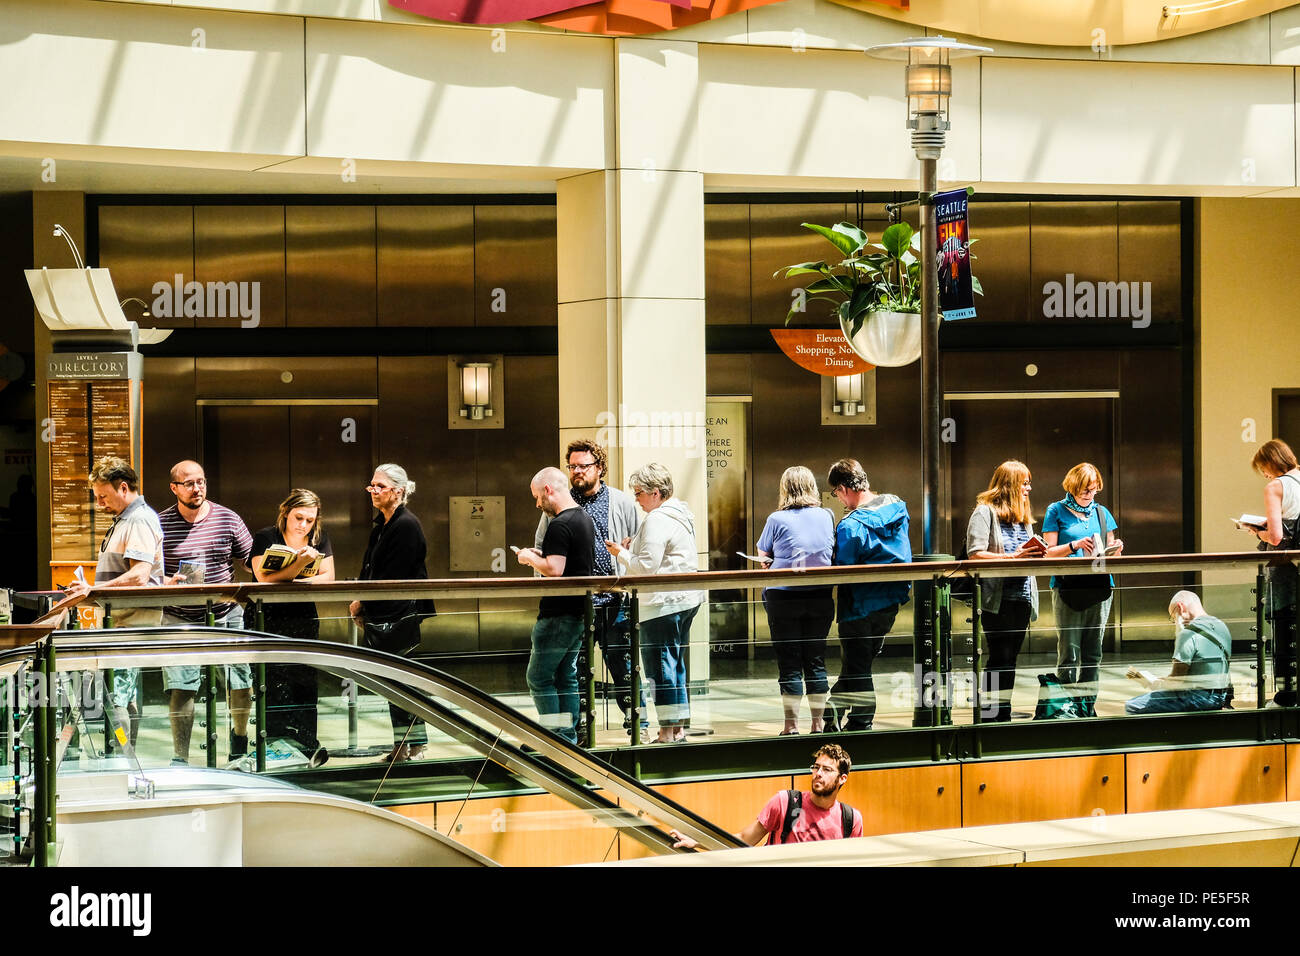 Movie Theater Ticket Line High Resolution Stock Photography And Images Alamy